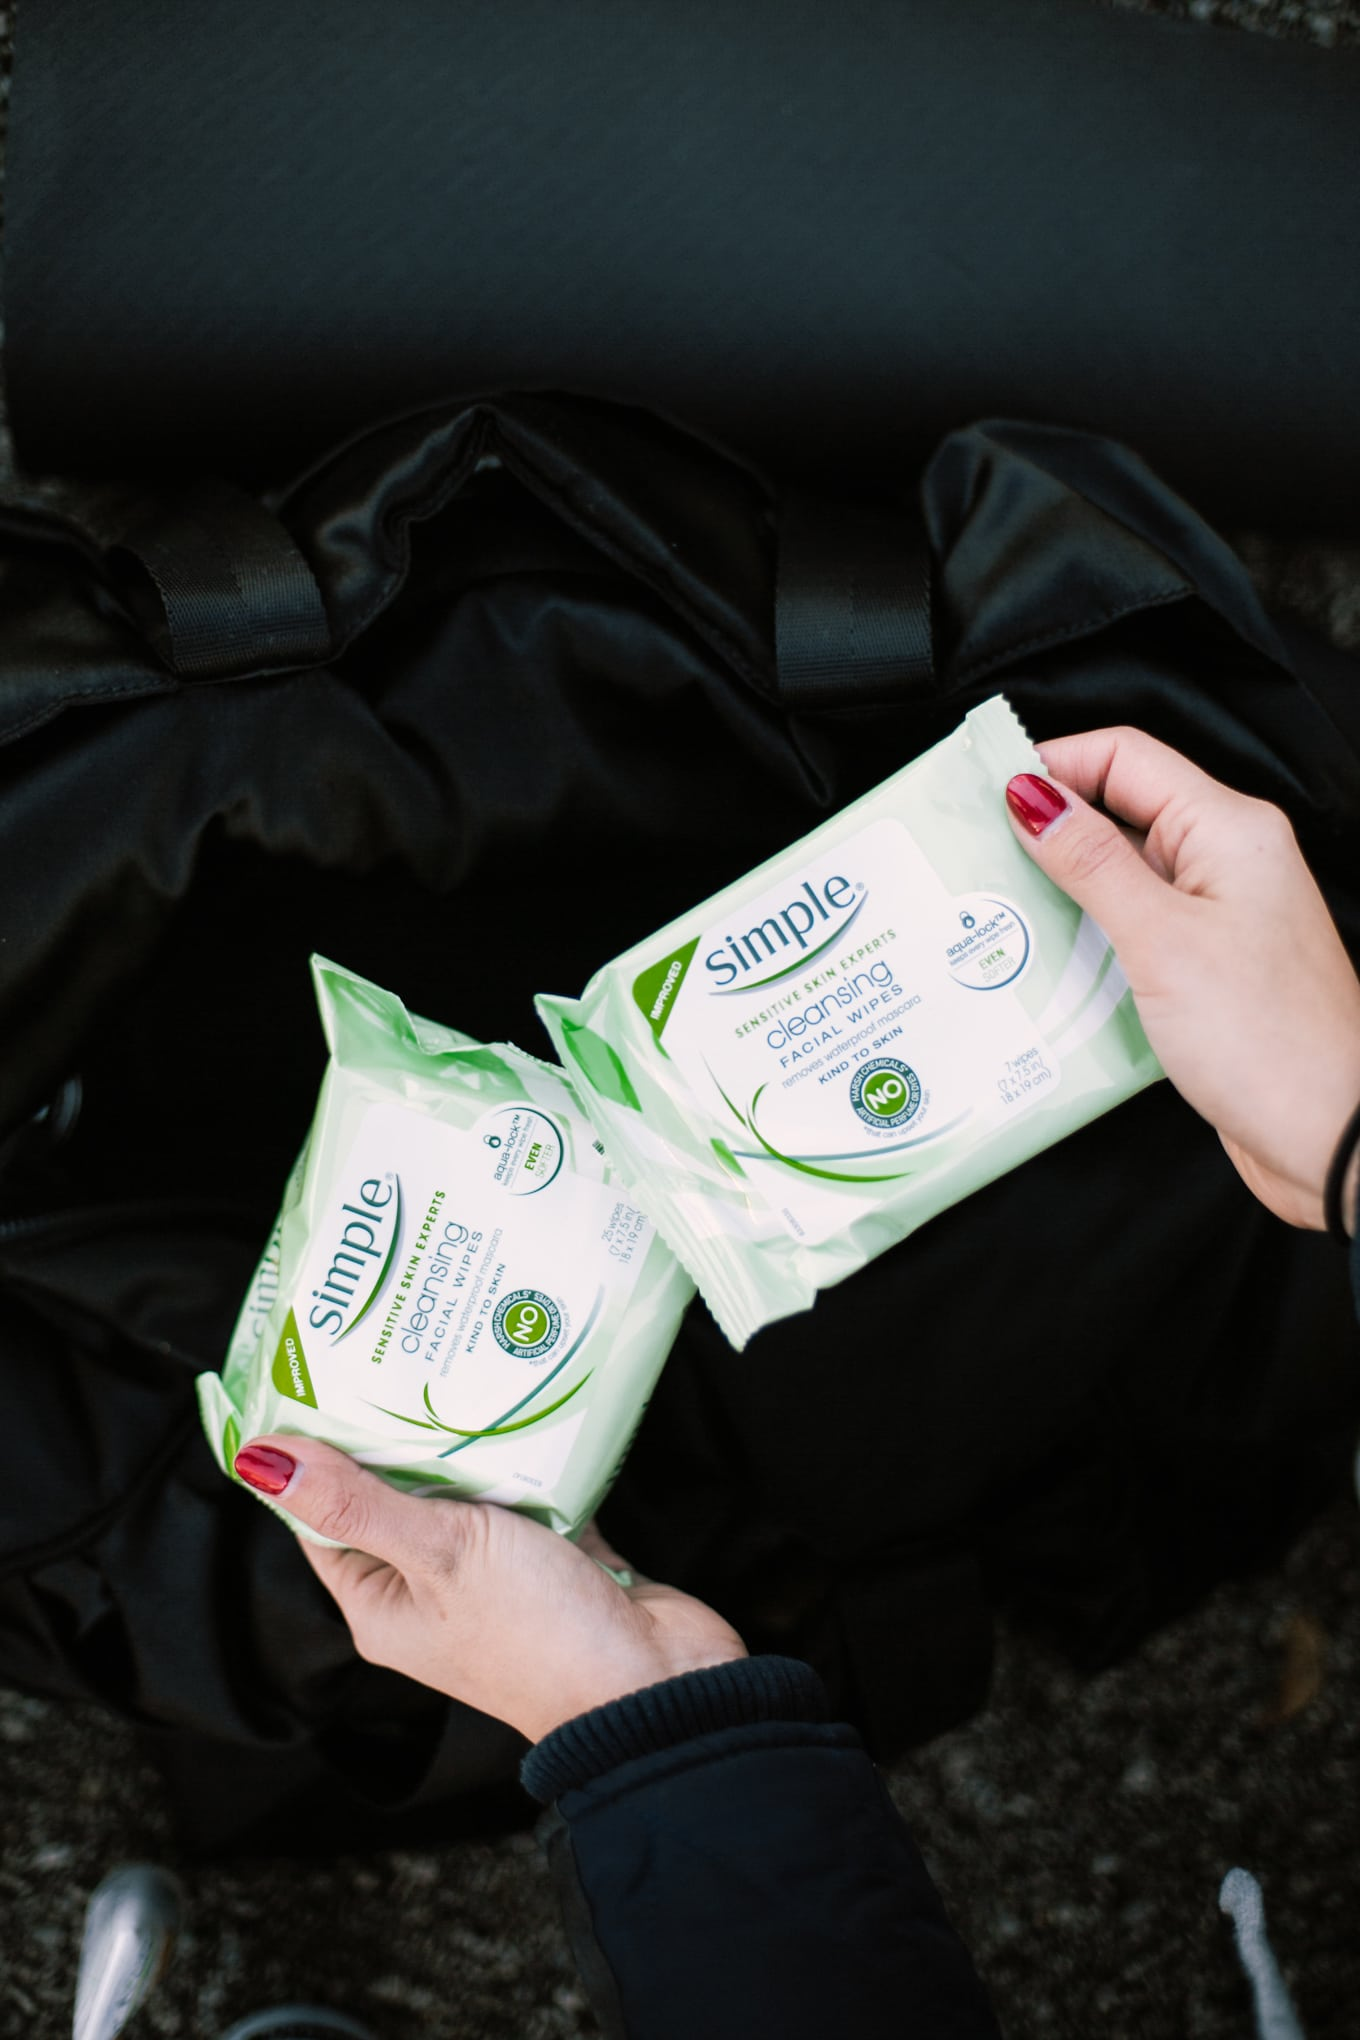 Post-Workout Skincare Tips: Simple Wipes